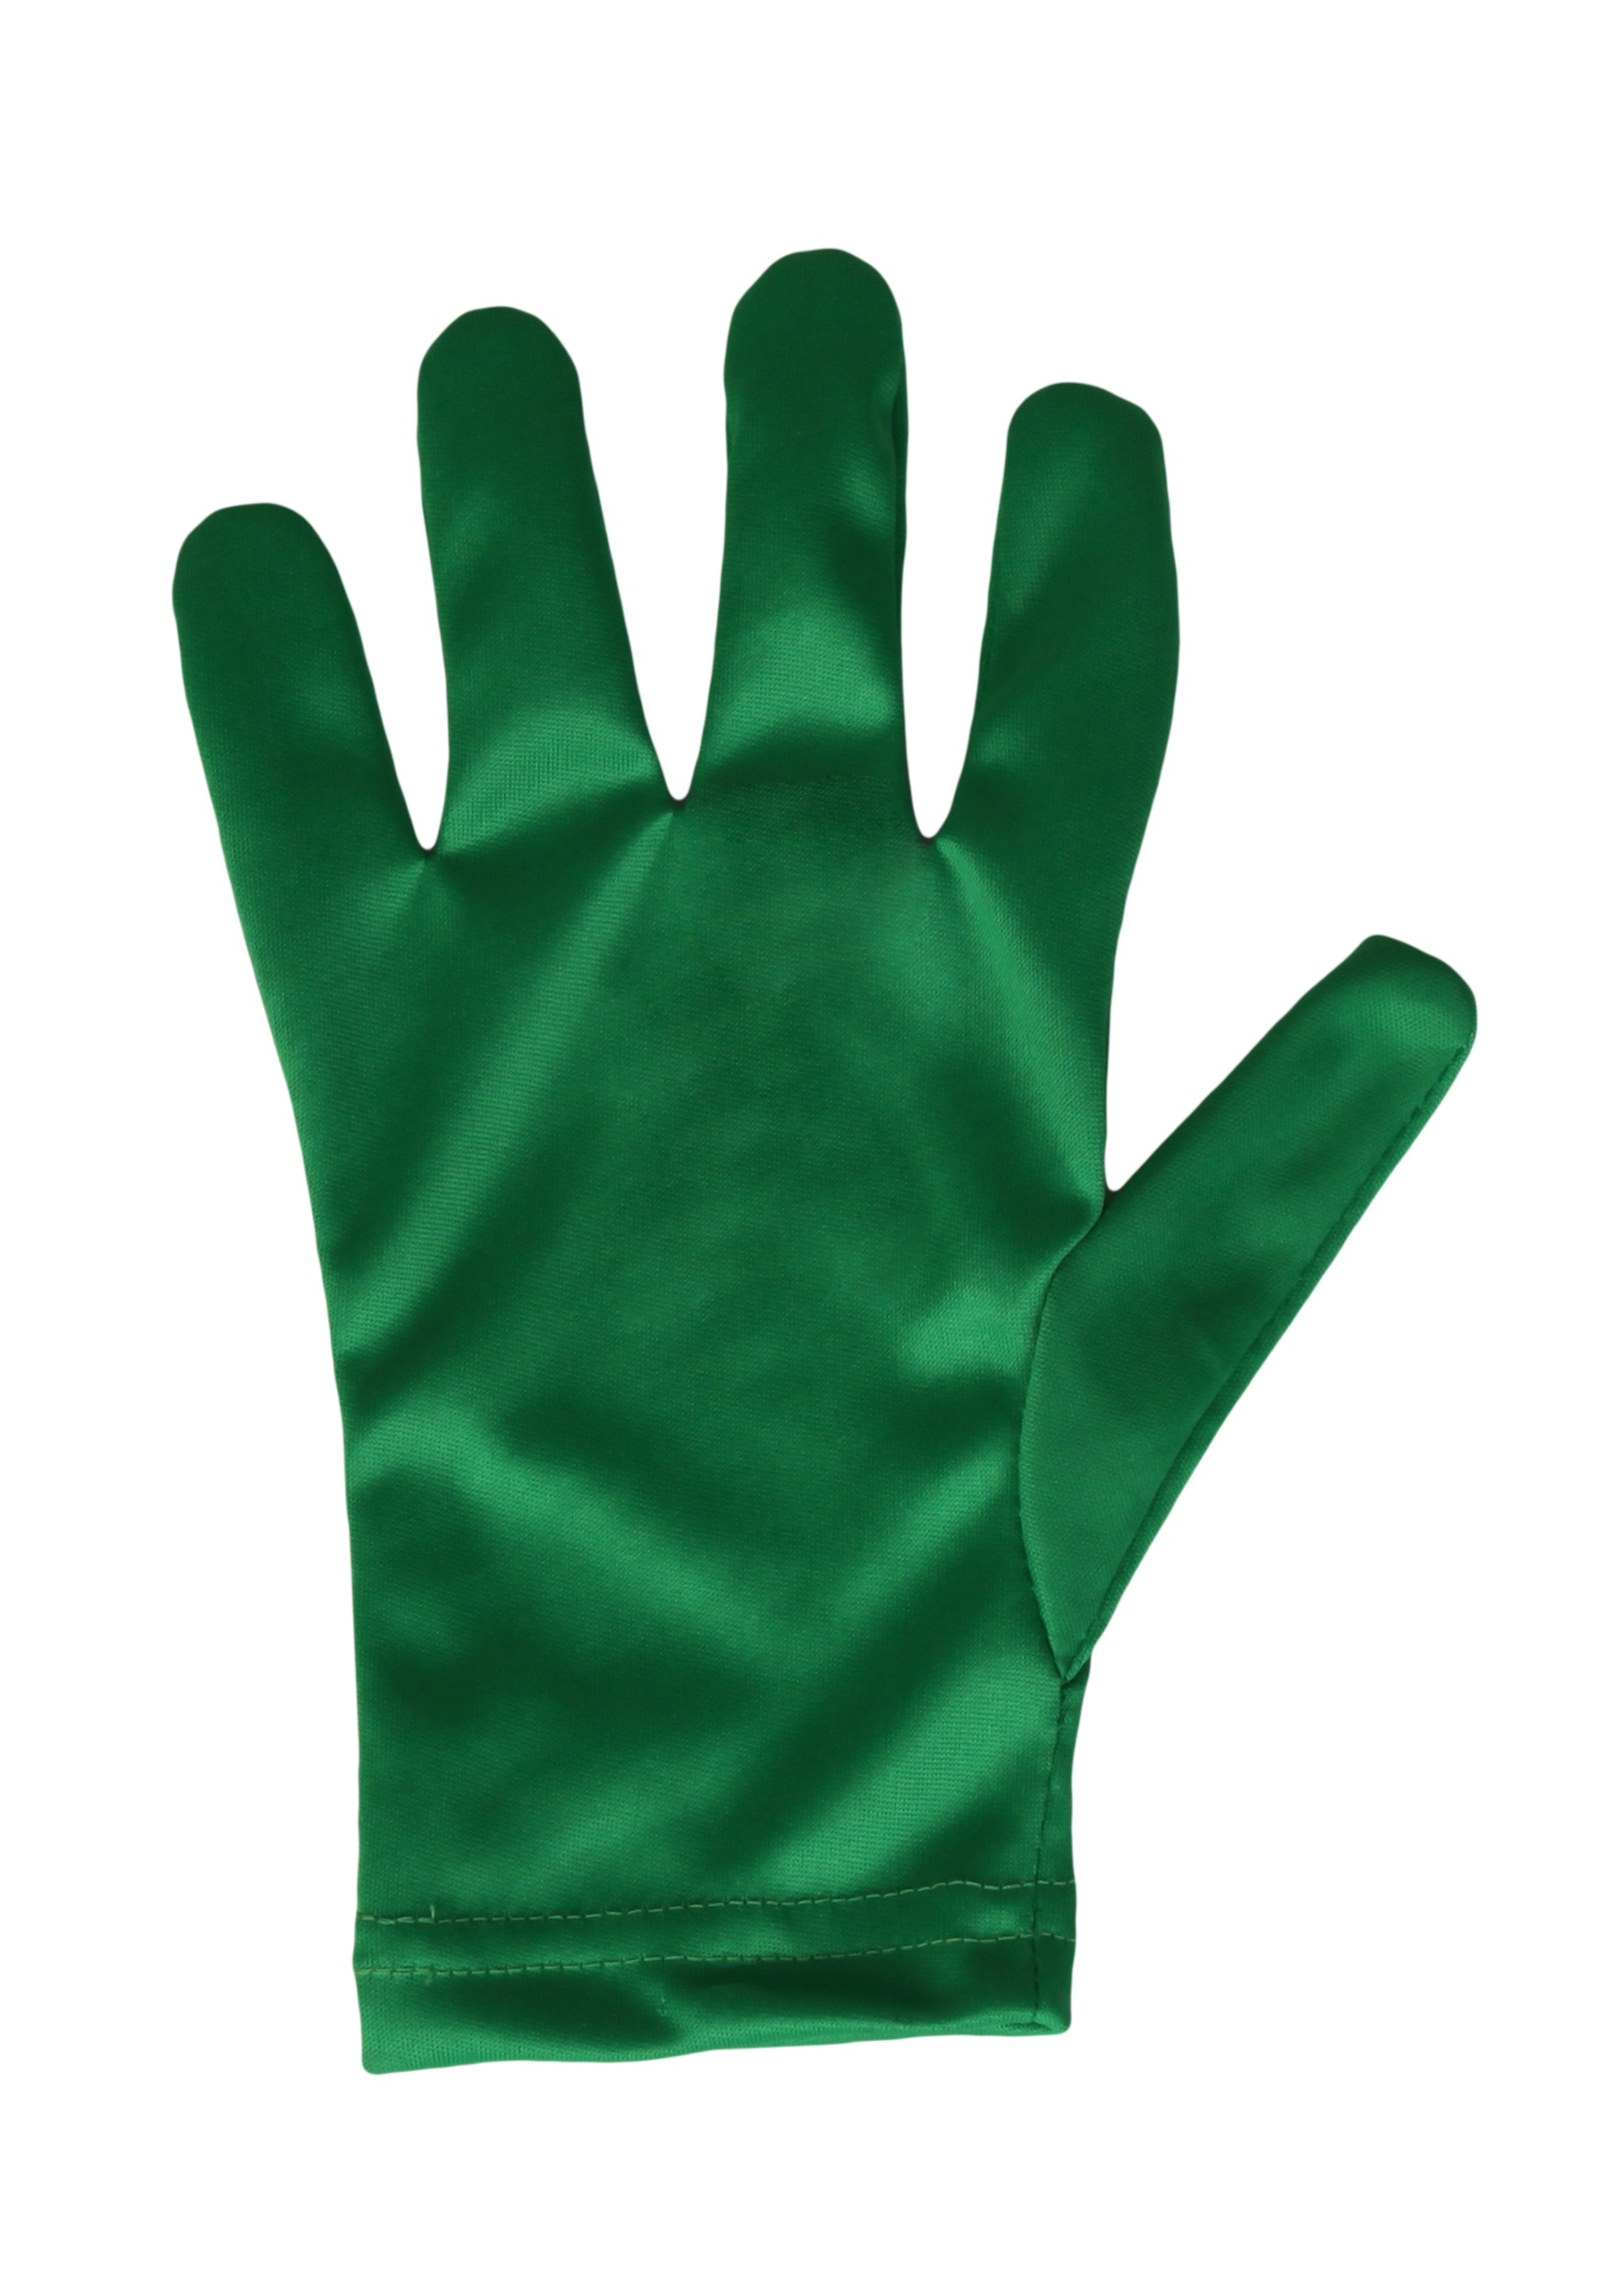 INOpets.com Anything for Pets Parents & Their Pets Adult Green Gloves